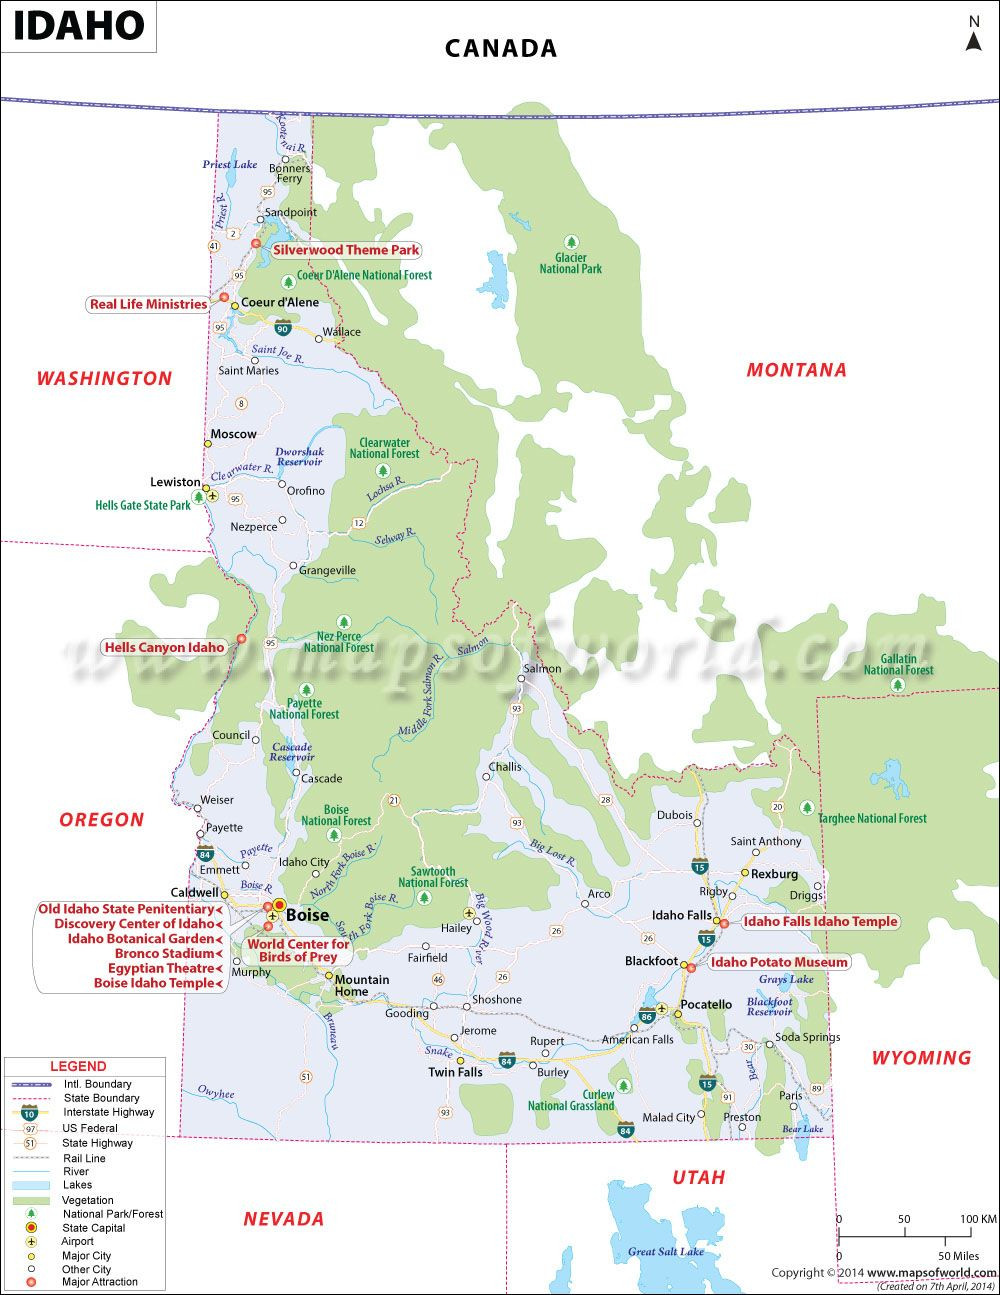 Idaho map showing the major travel attractions including cities